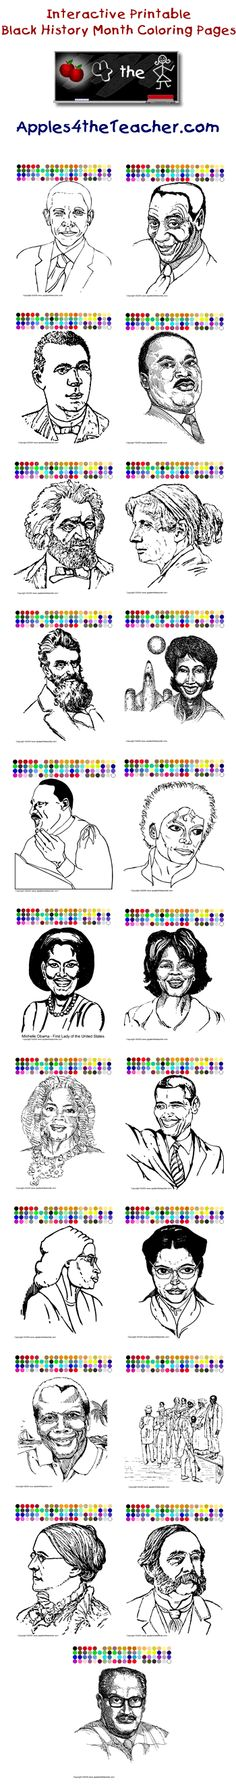 Printable interactive Black History Month coloring pages, Black History Month coloring pages for kids.